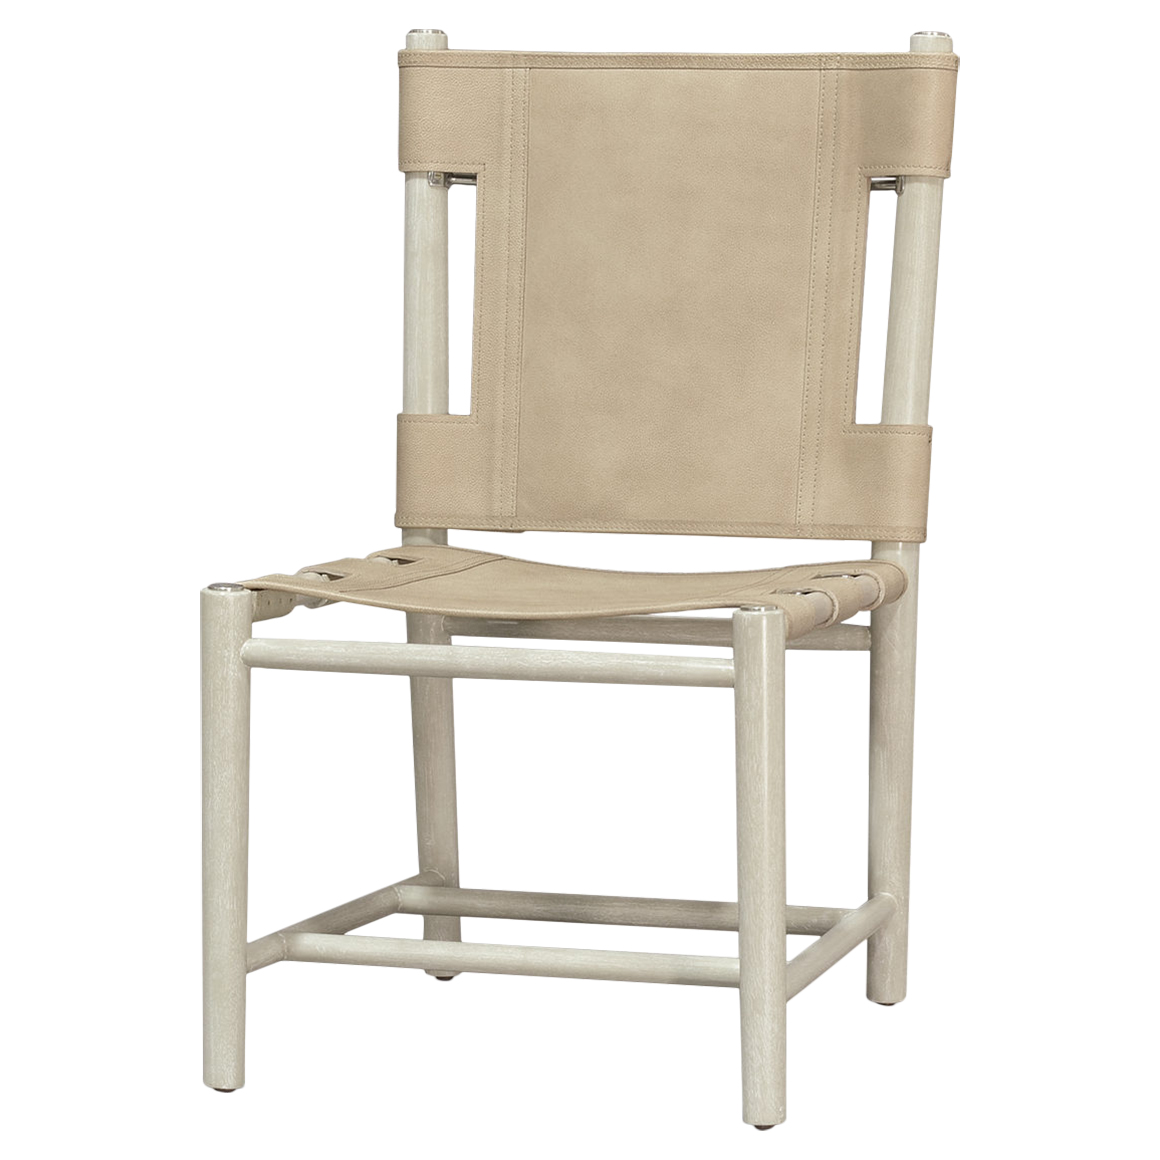 Bryton White Wash Cashew Leather Cane Side Chair